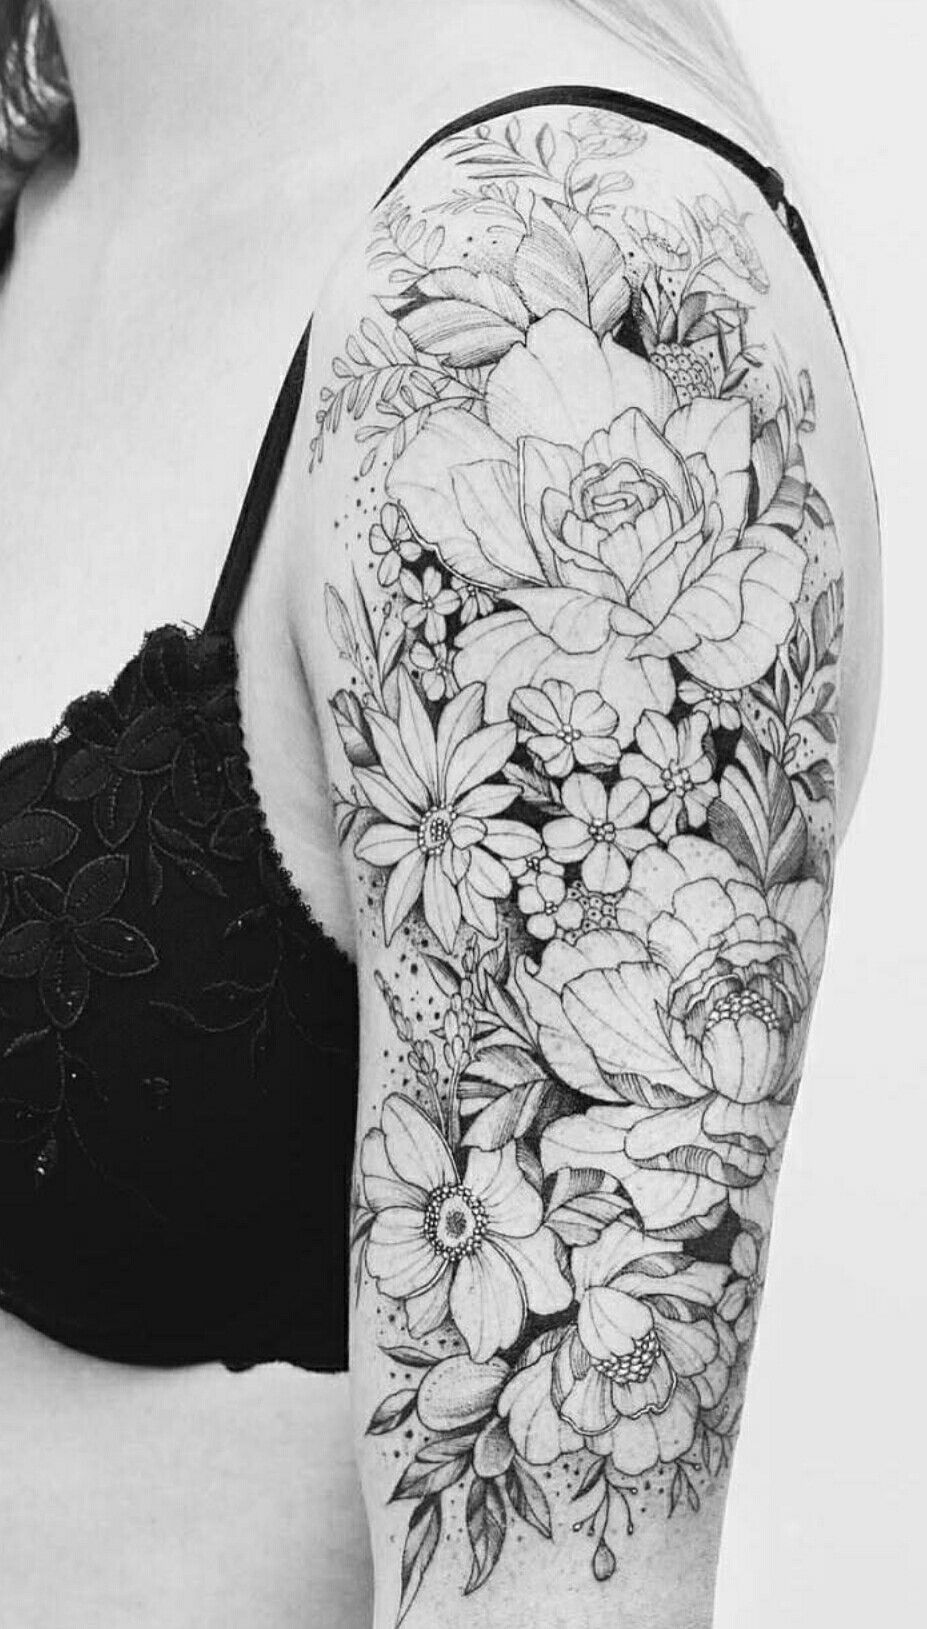 By Triton Shoulder Tattoos For Women Tattoos Sleeve Tattoos For Women